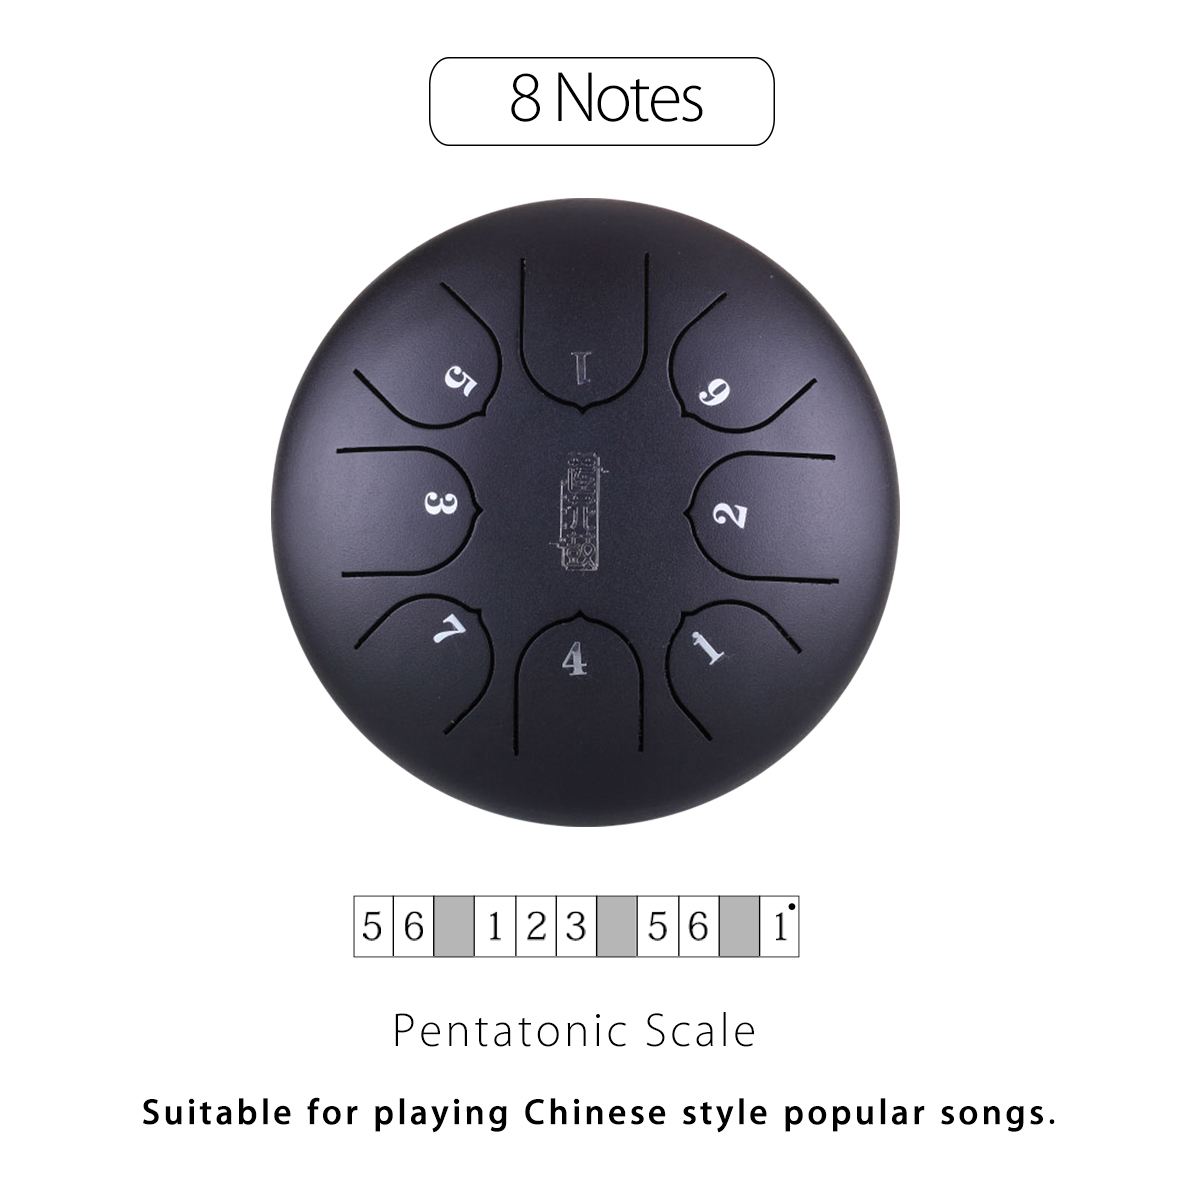 secondary tuning 99 pitch can be used as a musical instrument perfect for yoga and meditation help you relax rb9kflvoe6sab3 xaatz1pfskmk398 [ 1200 x 1200 Pixel ]